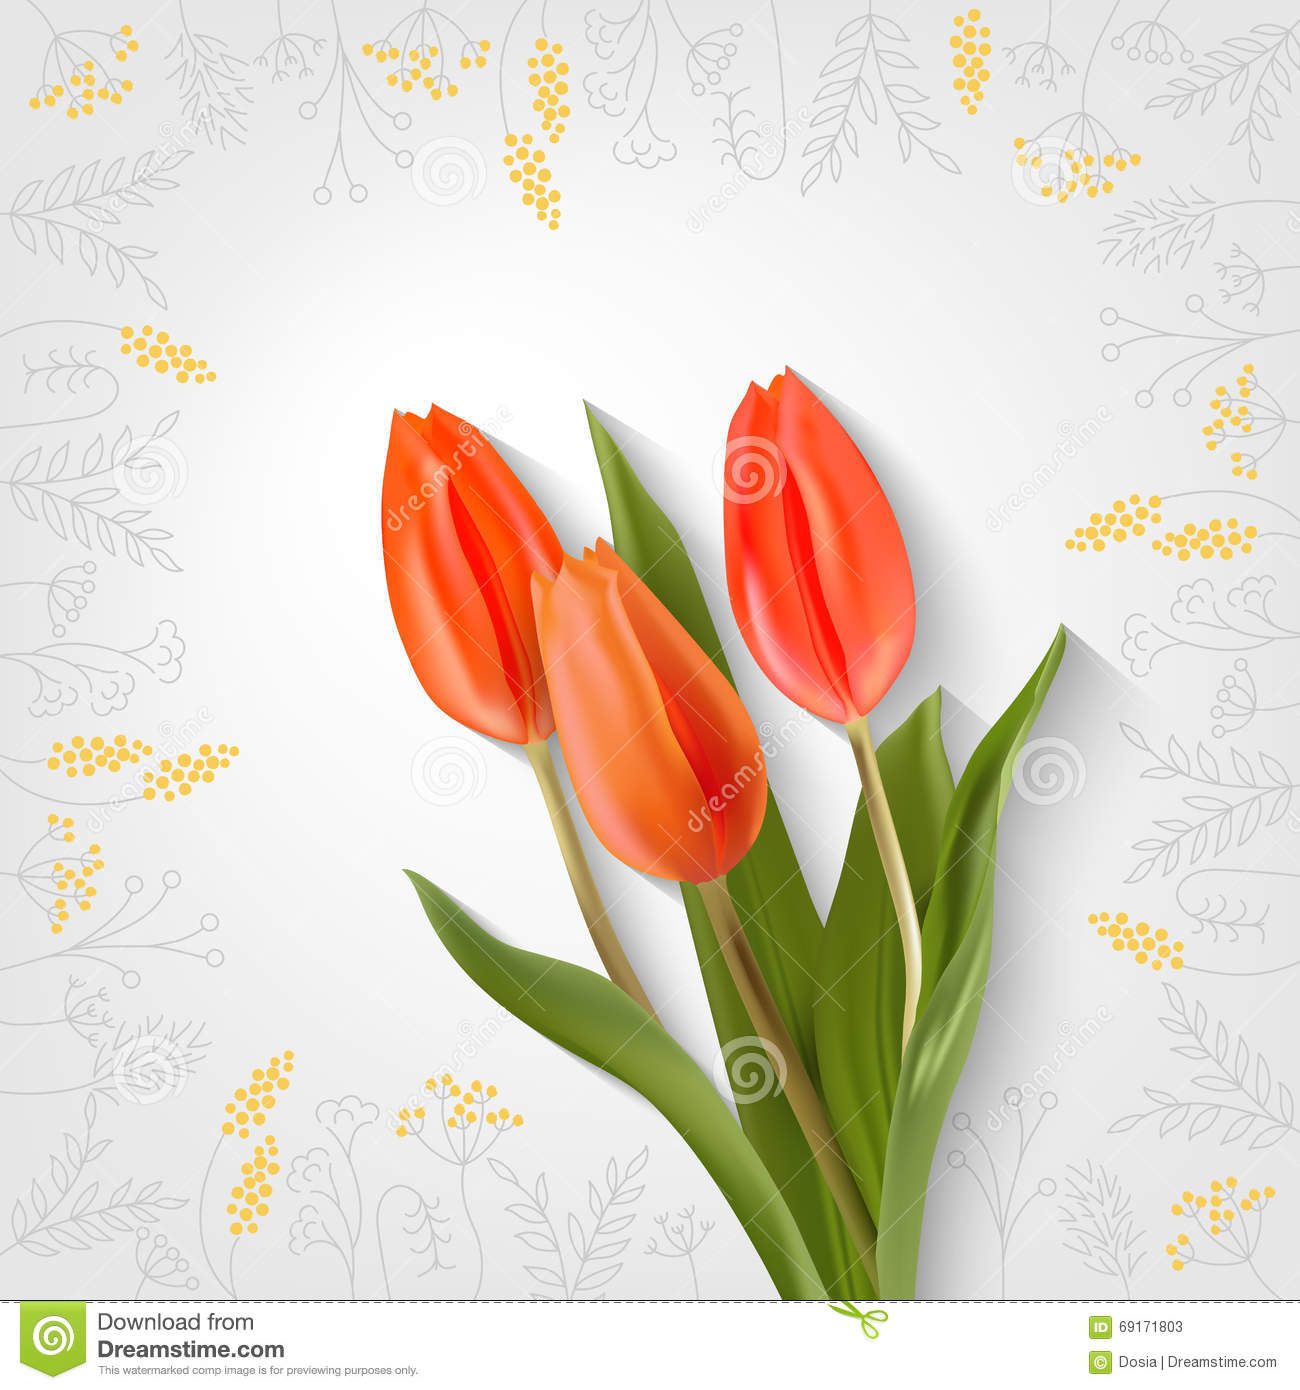 40facd26cc96b Hand drawing flowers and three red tulip. Spring card. Vector realistic  tulips on a light background with a shadow. Frame gray flowers.